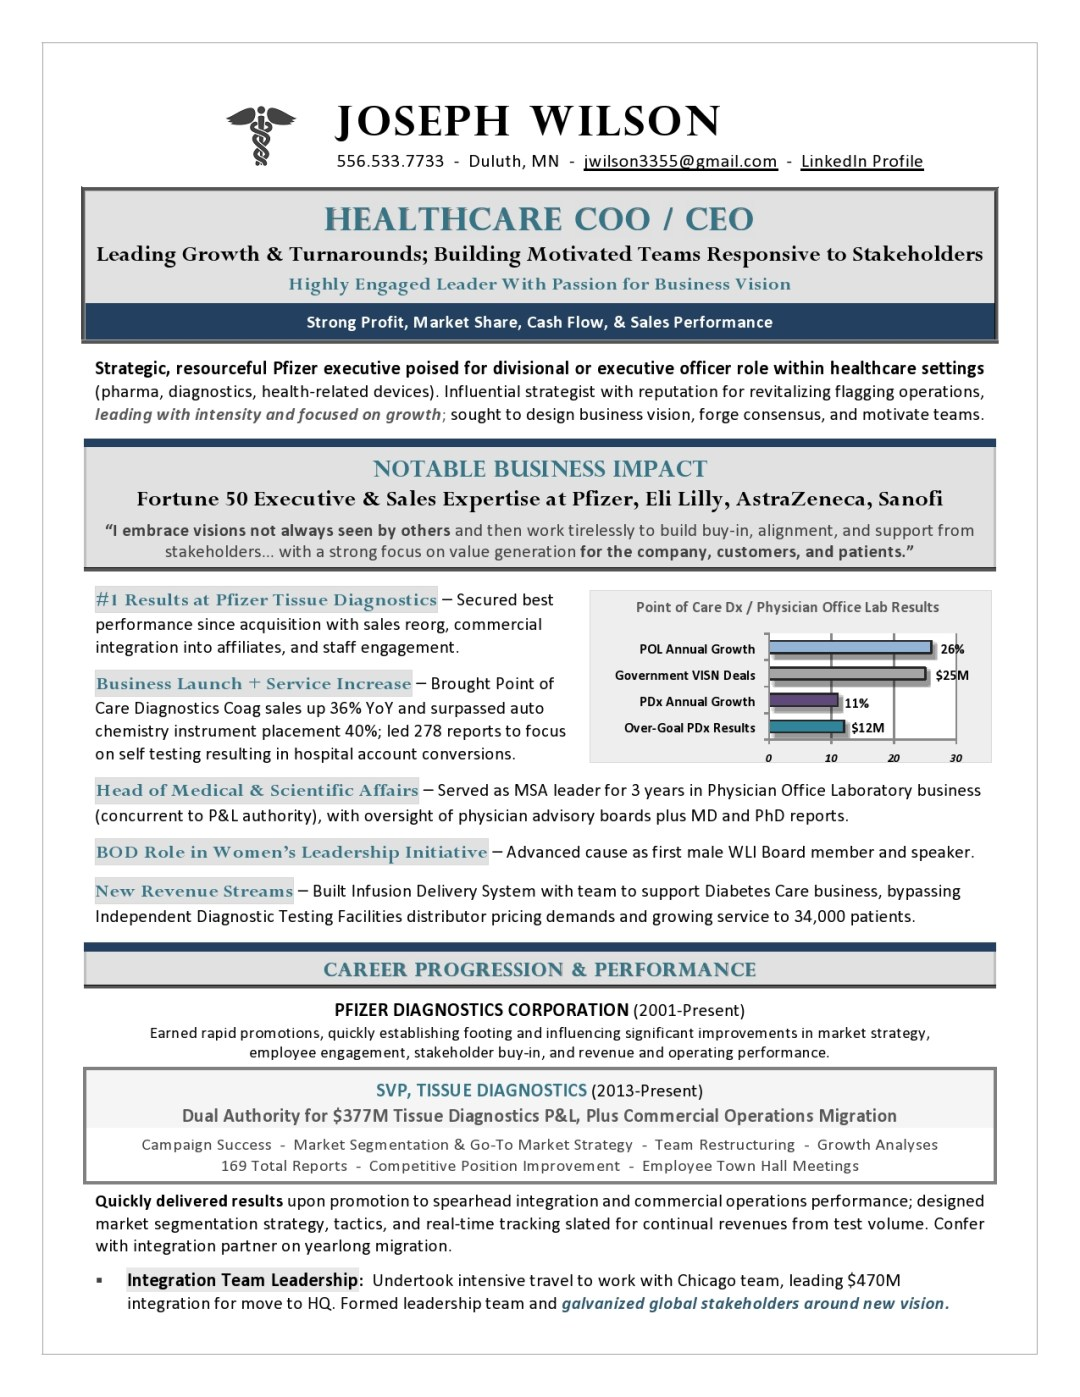 Healthcare CEO & COO Resume Sample Page 1